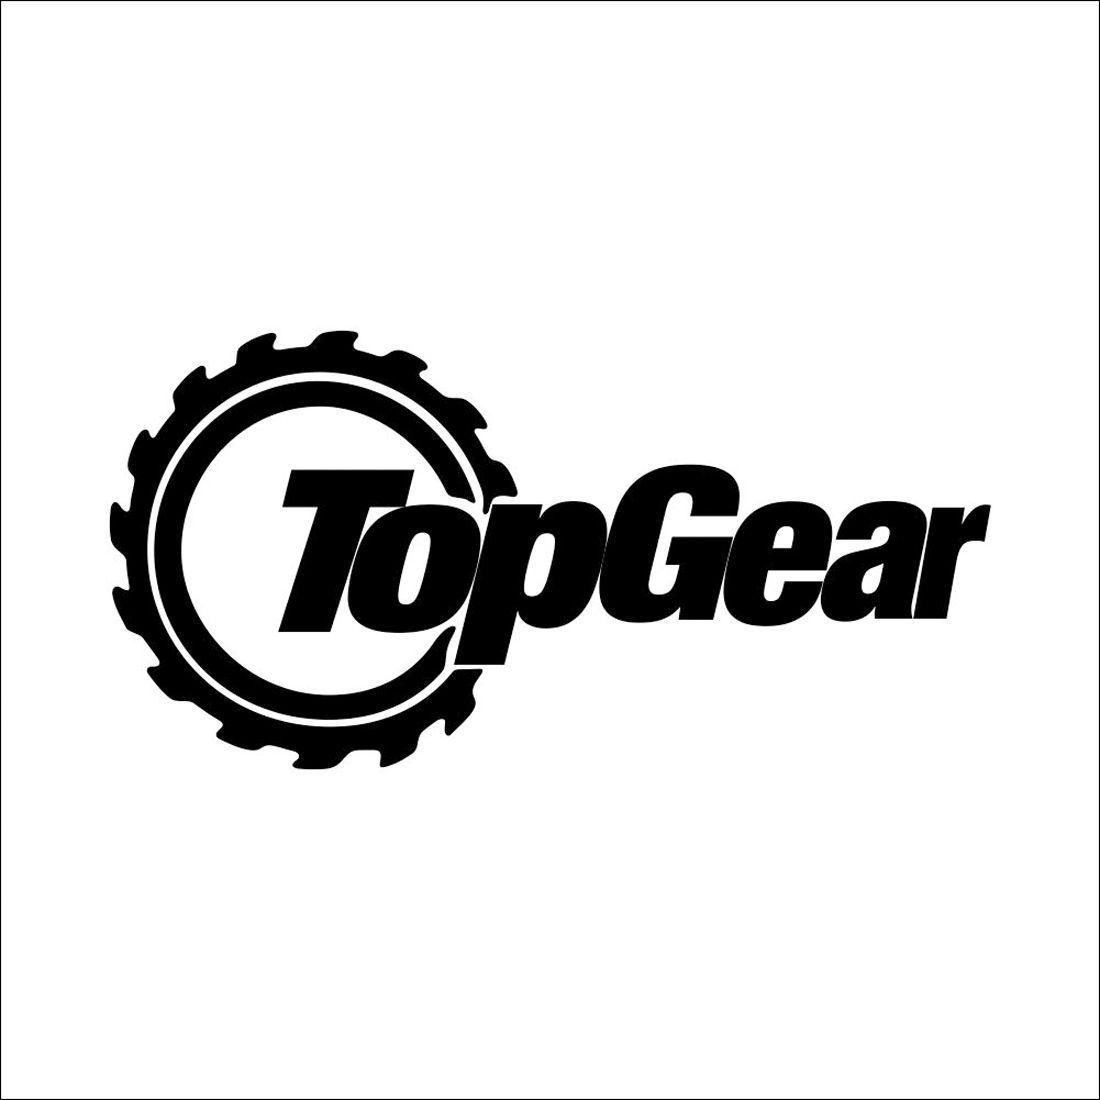 Buy 2015 Top Gear Words Car Stickers Removable Lettering